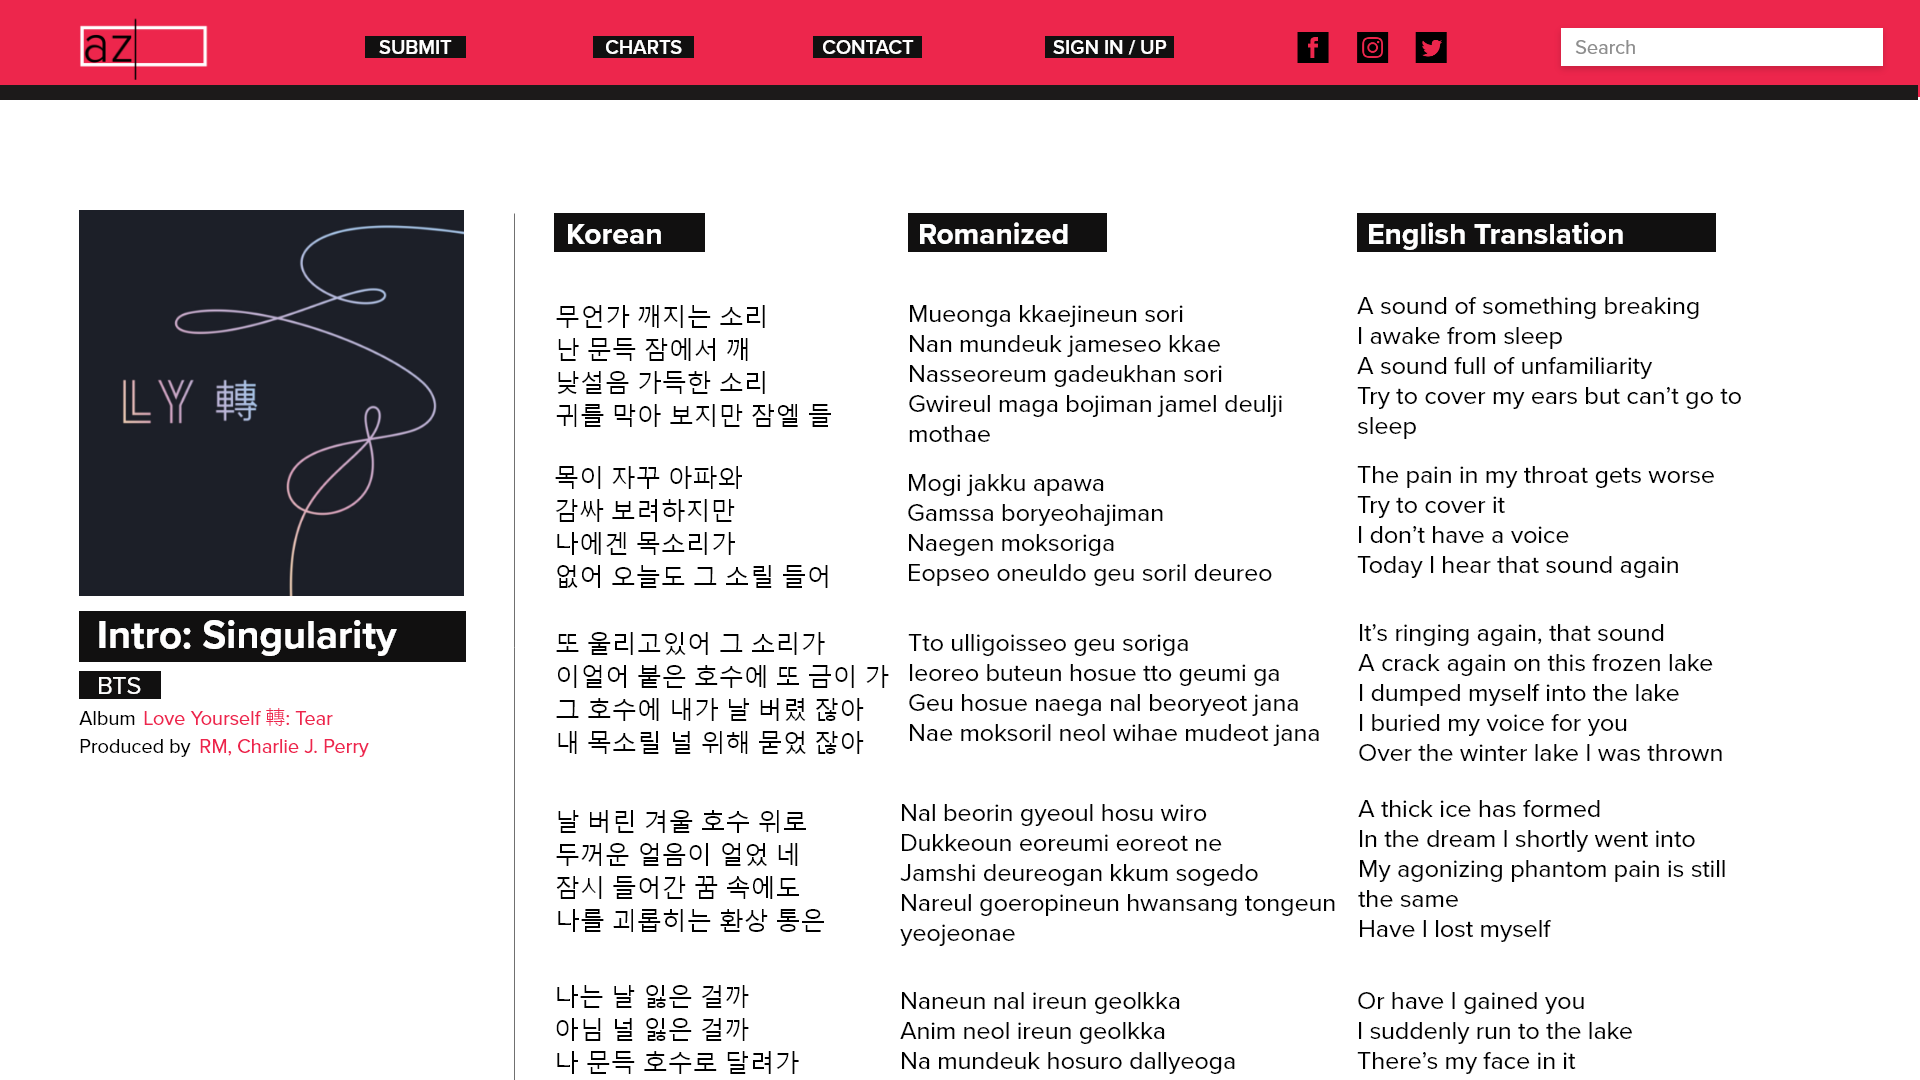 Redesigned lyrics page—lyrics in the original language (if applicable), romanized version, and English translation are organized horizontally so users can avoid scrolling a lot and so they can see translations side by side.